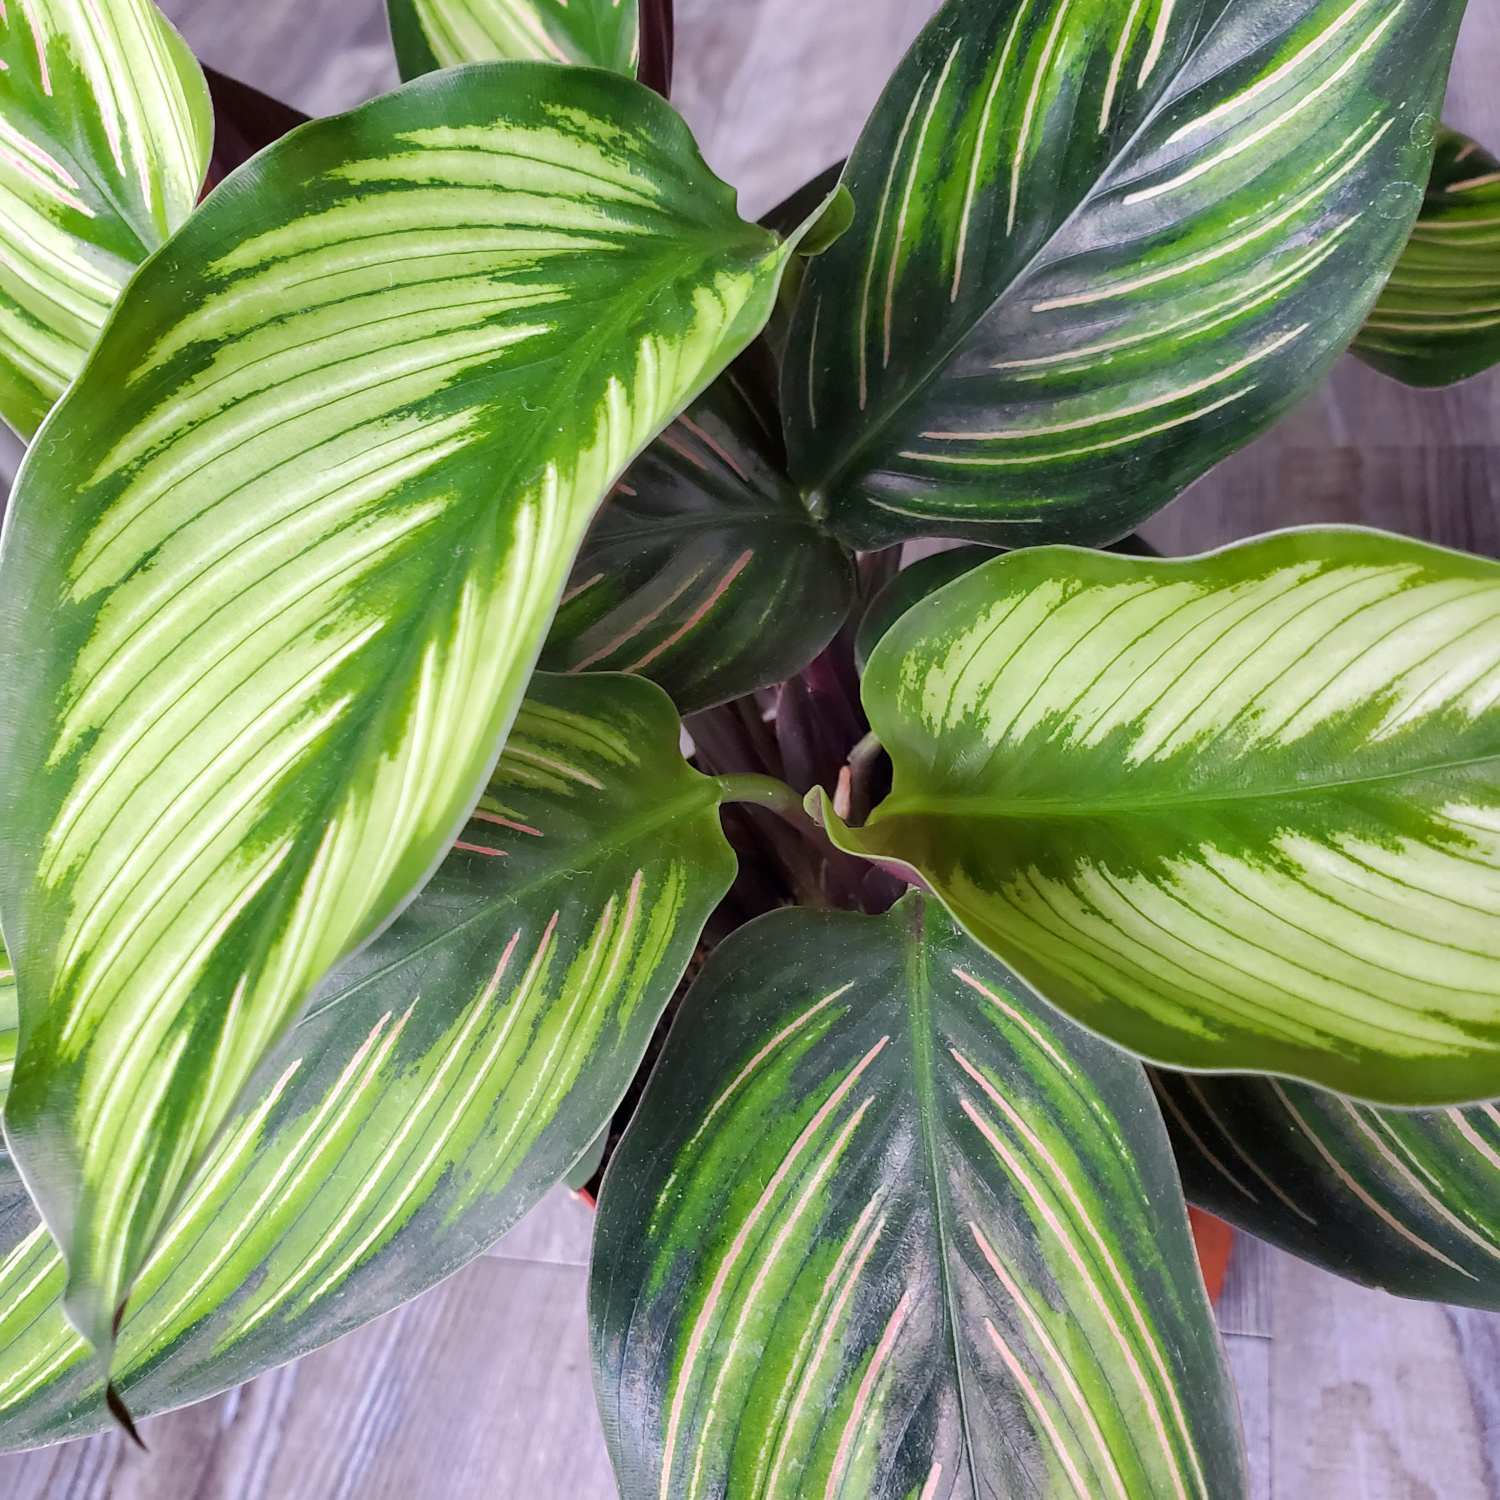 A calathea beauty star shows off its leaves